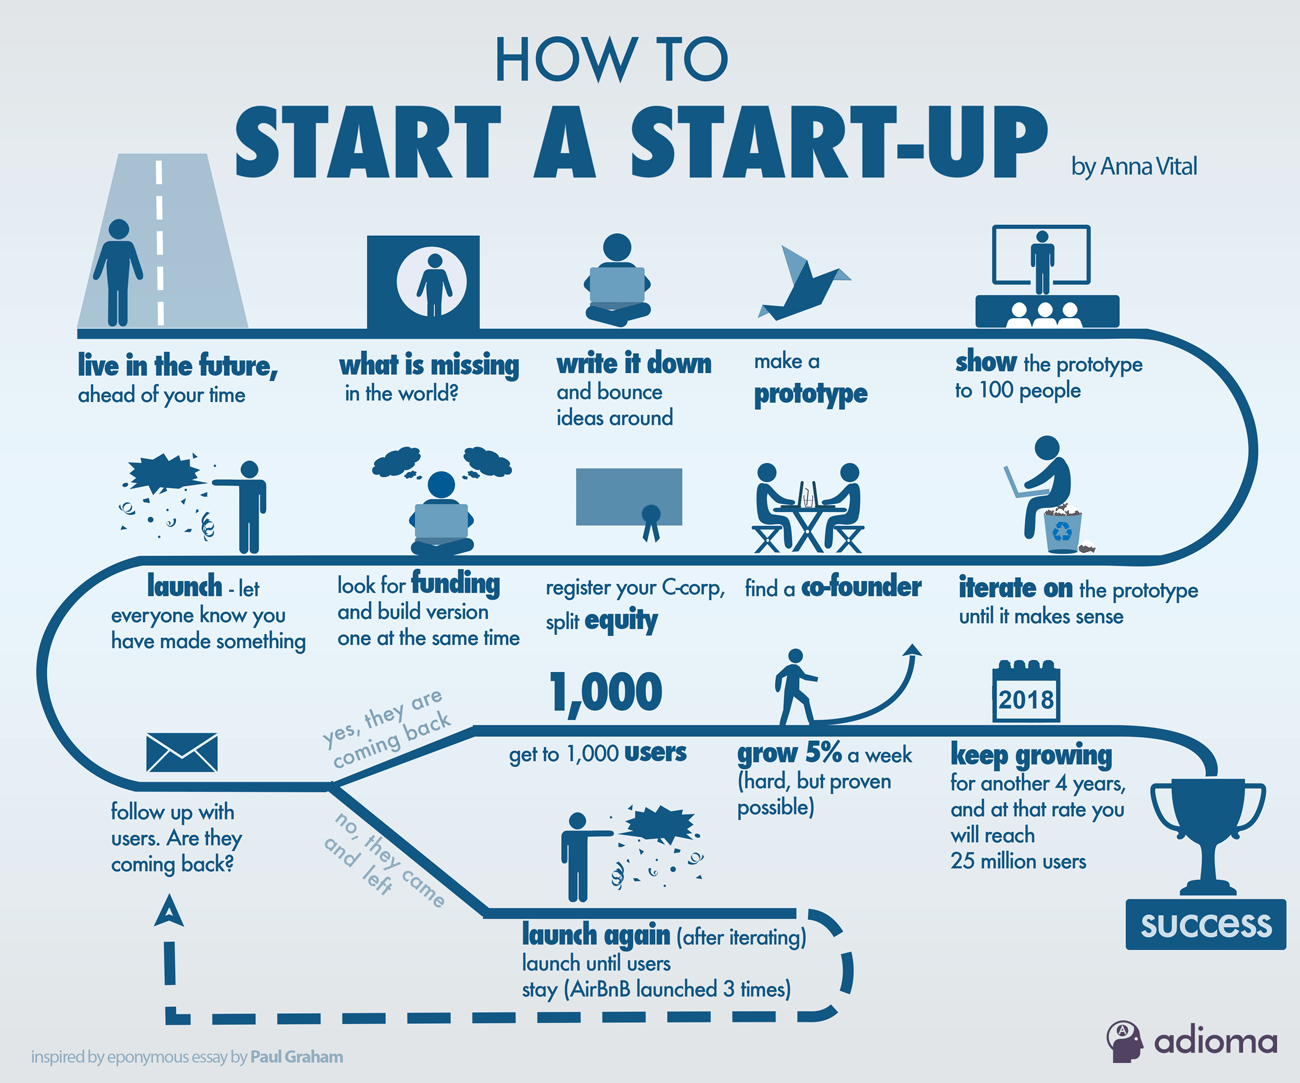 Steps to Start a Startup